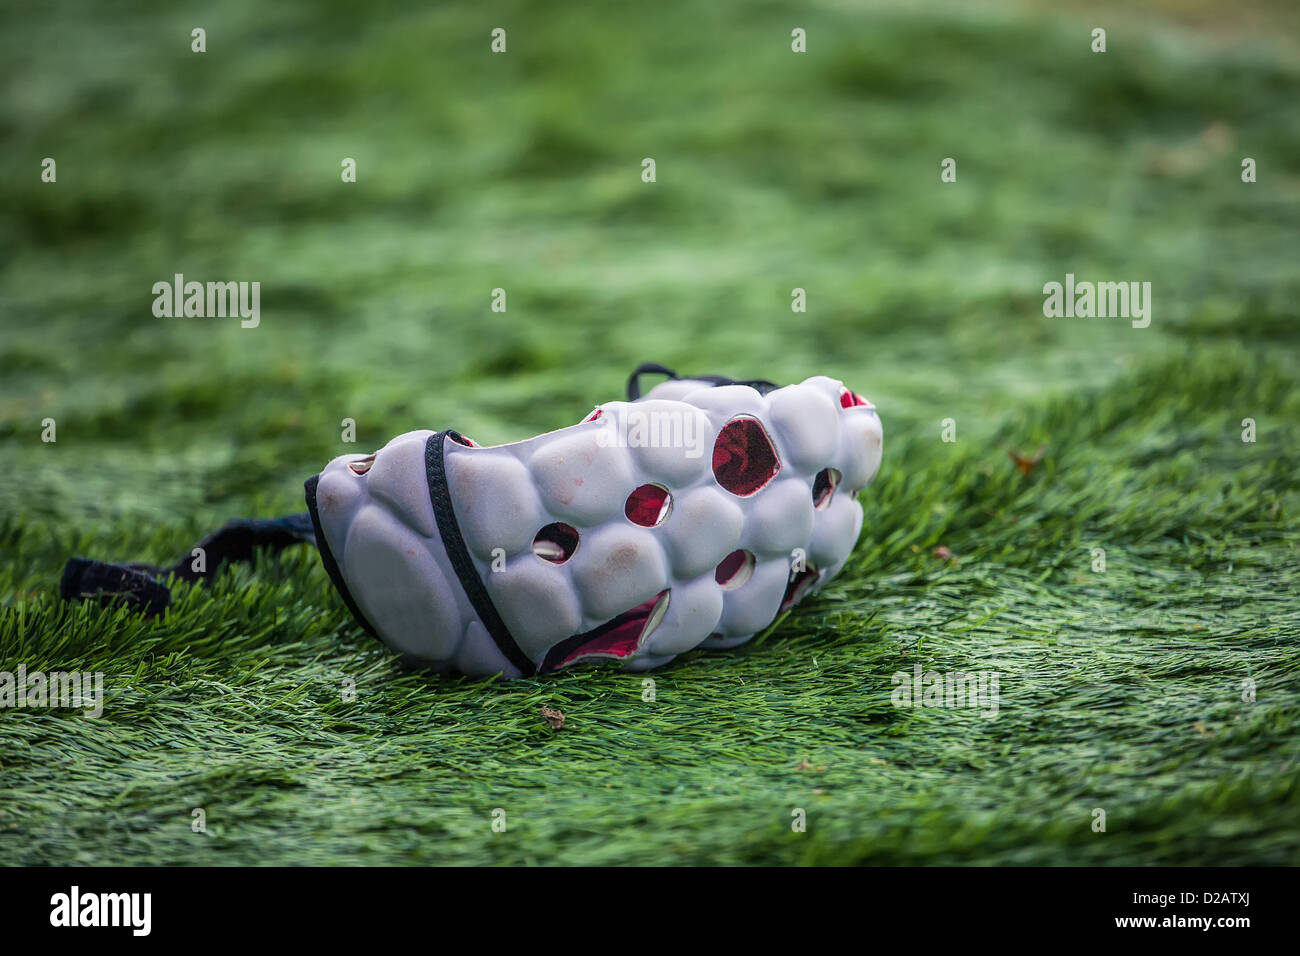 helmet rugby player - Stock Image